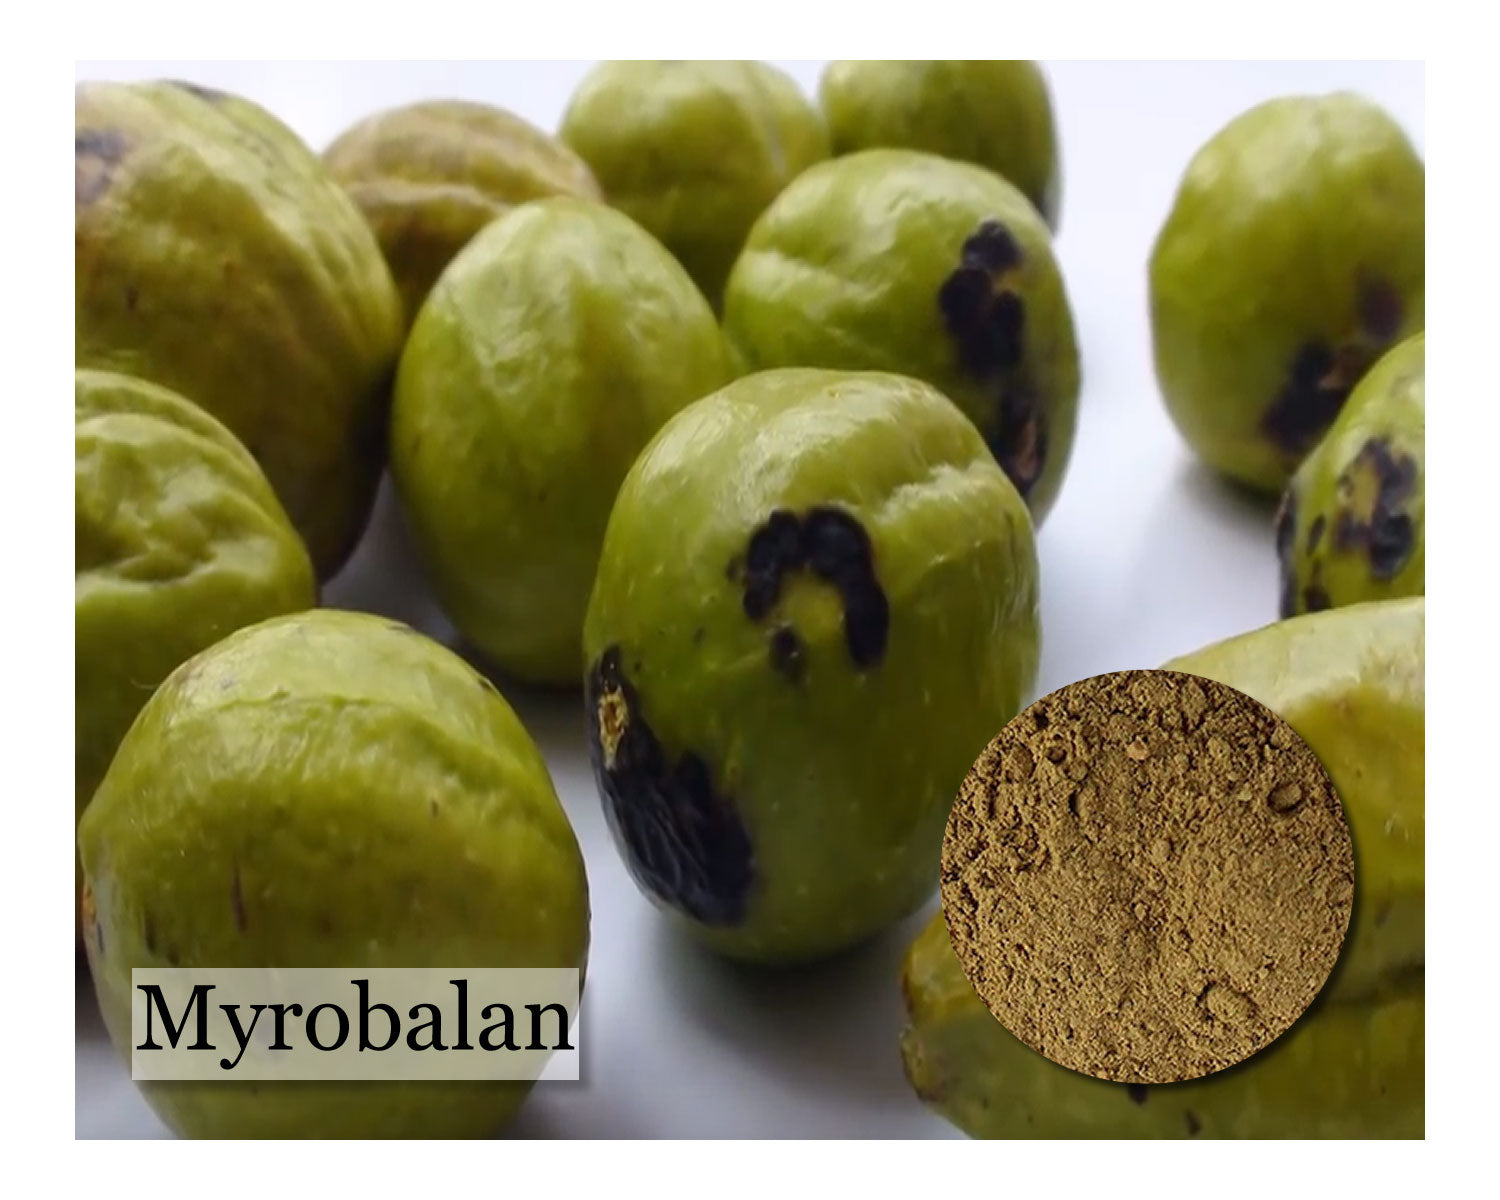 Myrobalan - 16 oz - Wholesale